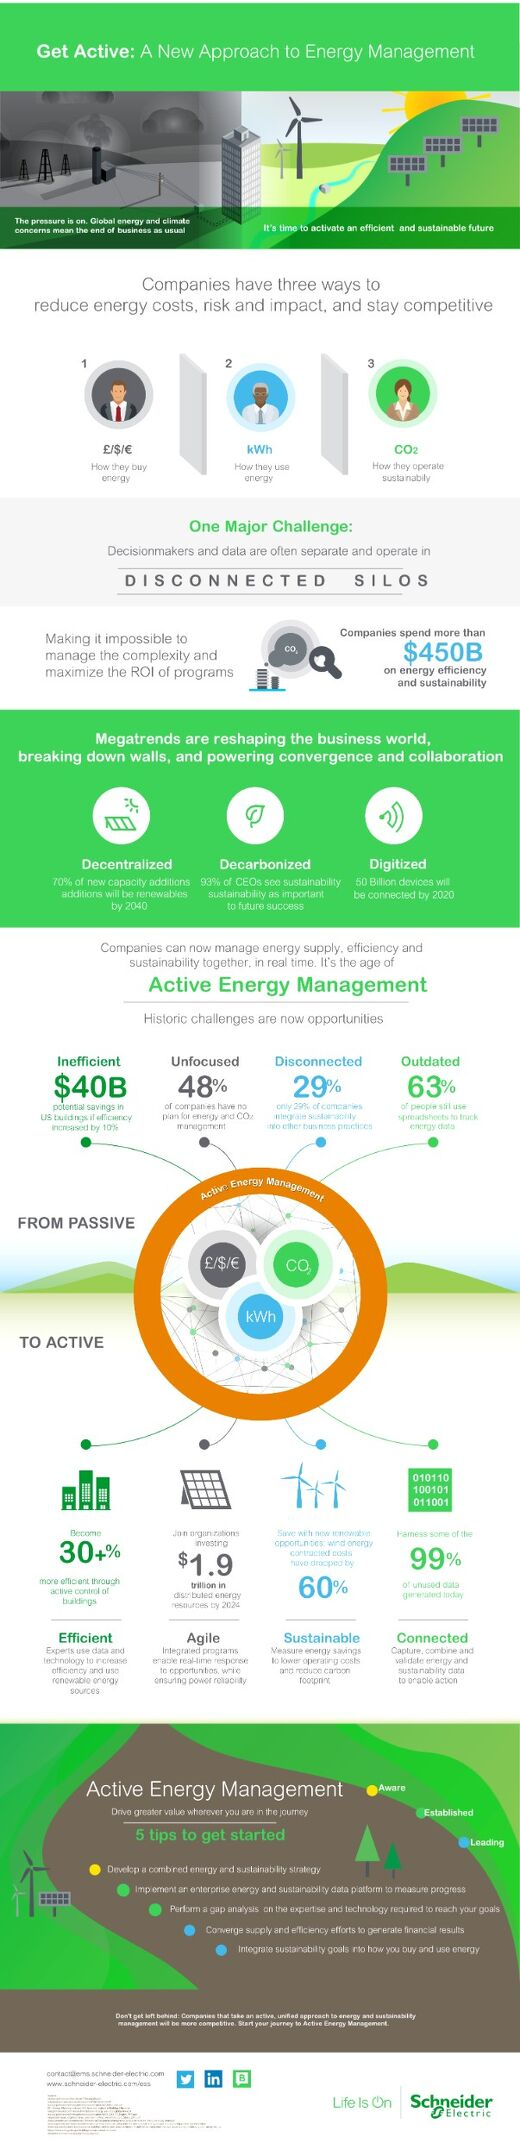 Get Active: A New Approach to Energy Management